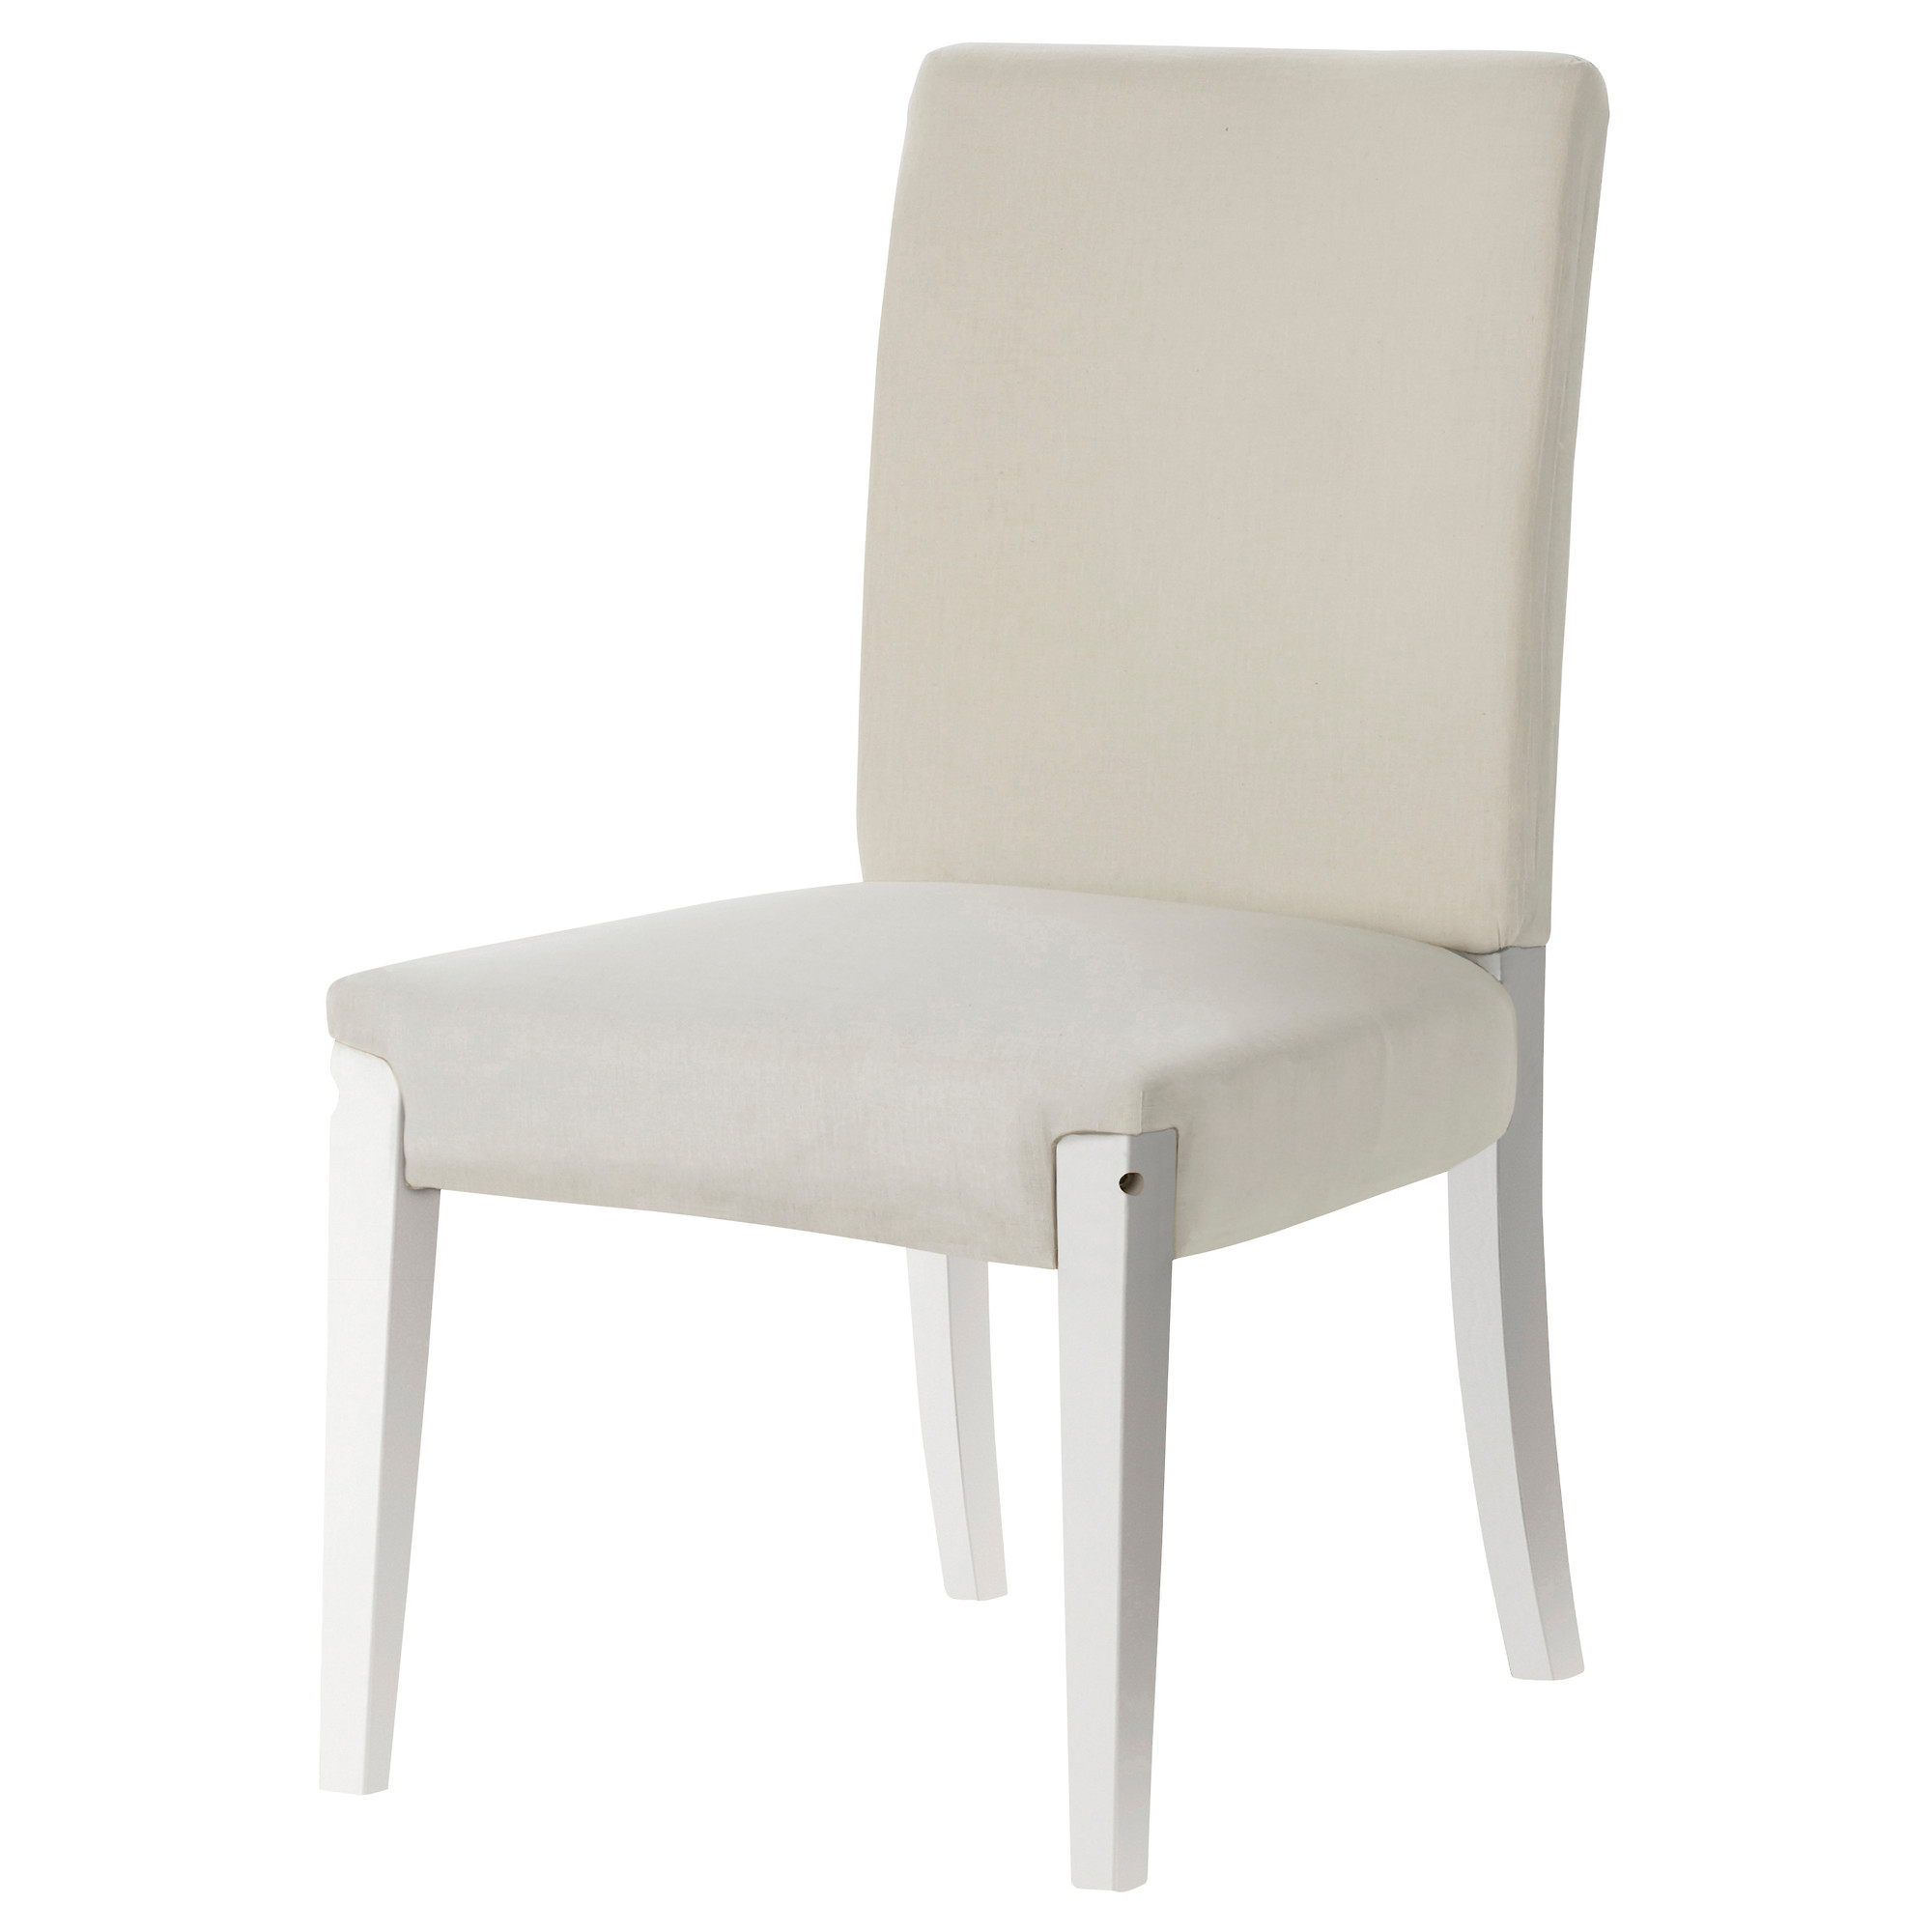 White Upholstered Chair White Upholstered Dining Chair Homesfeed